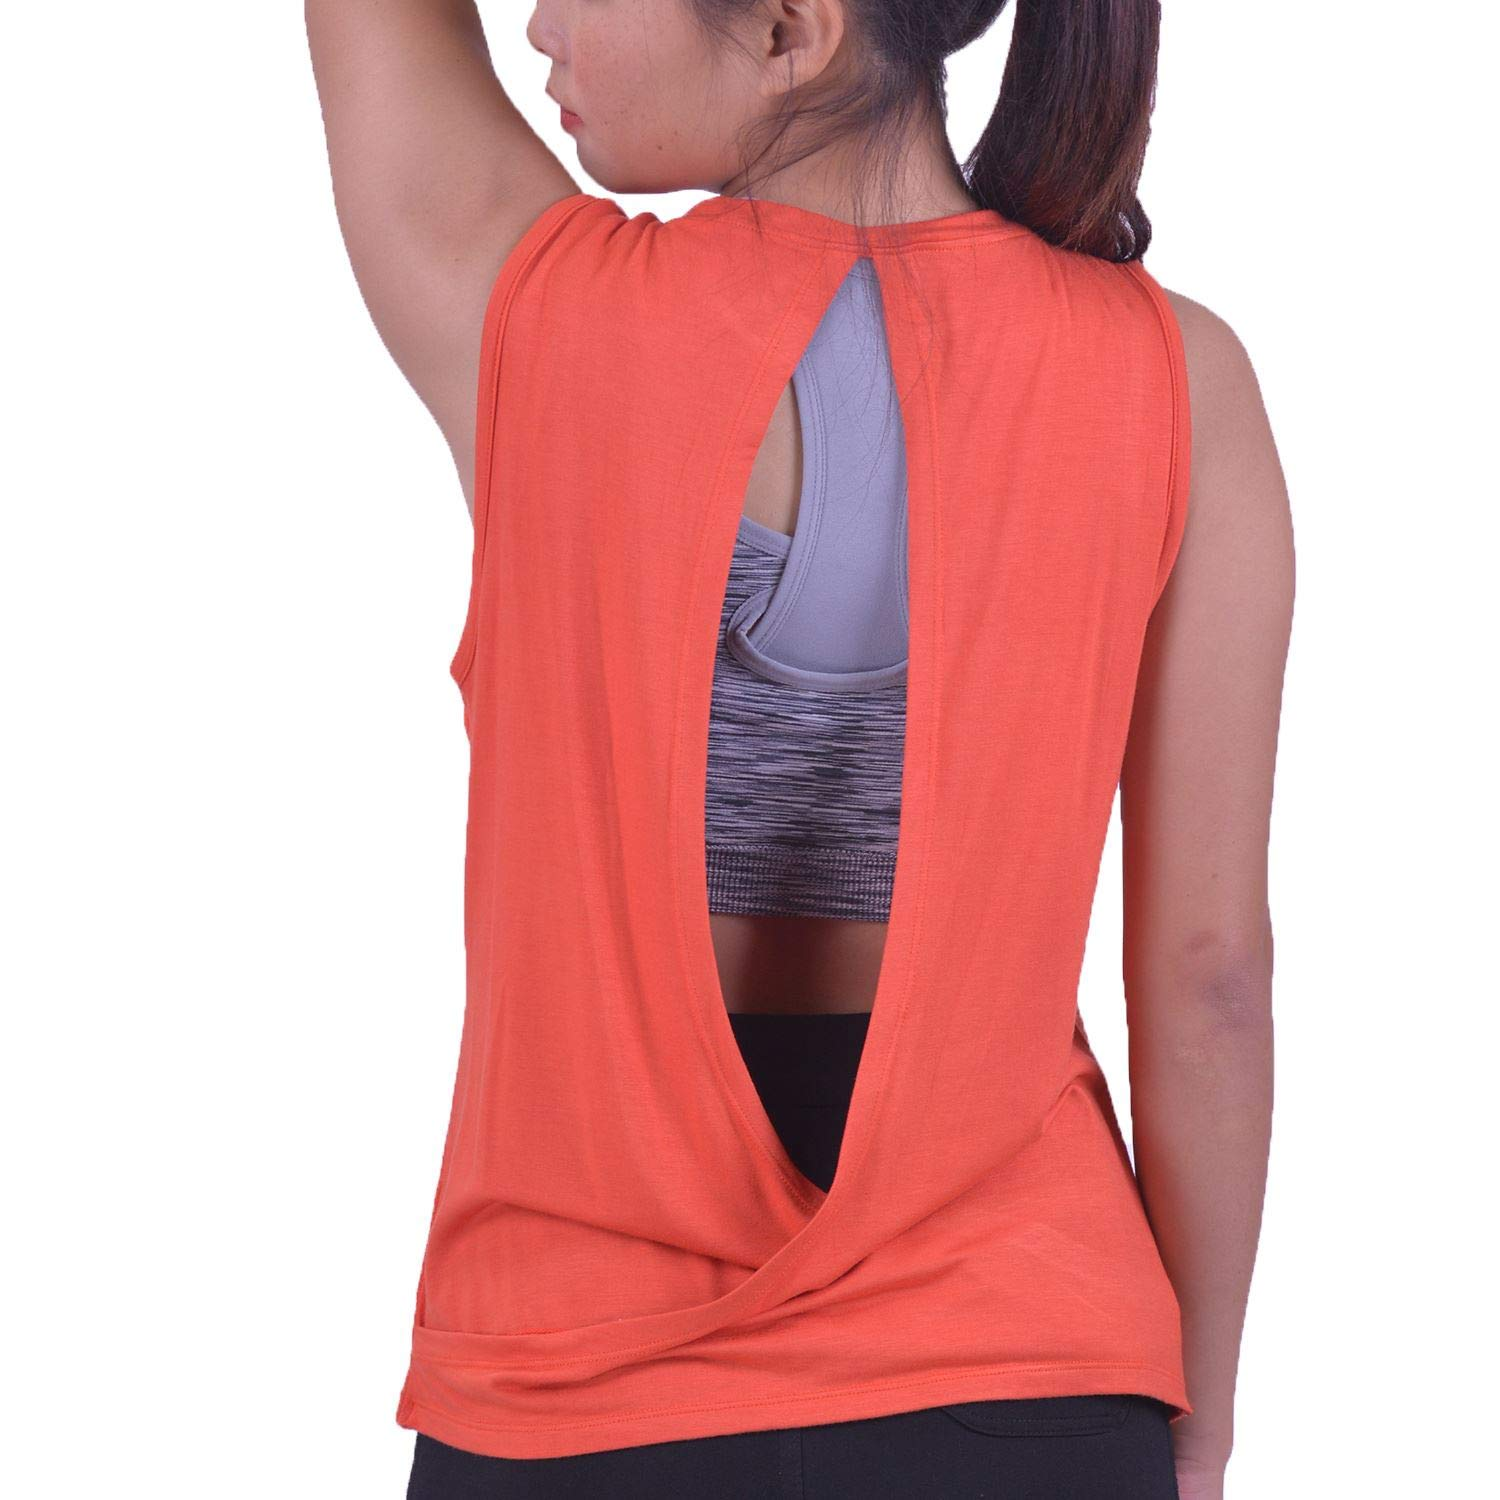 LOFBAZ Workout Tank Tops for Women Yoga Gym Shirts Athletic Clothes Plus S-4XL